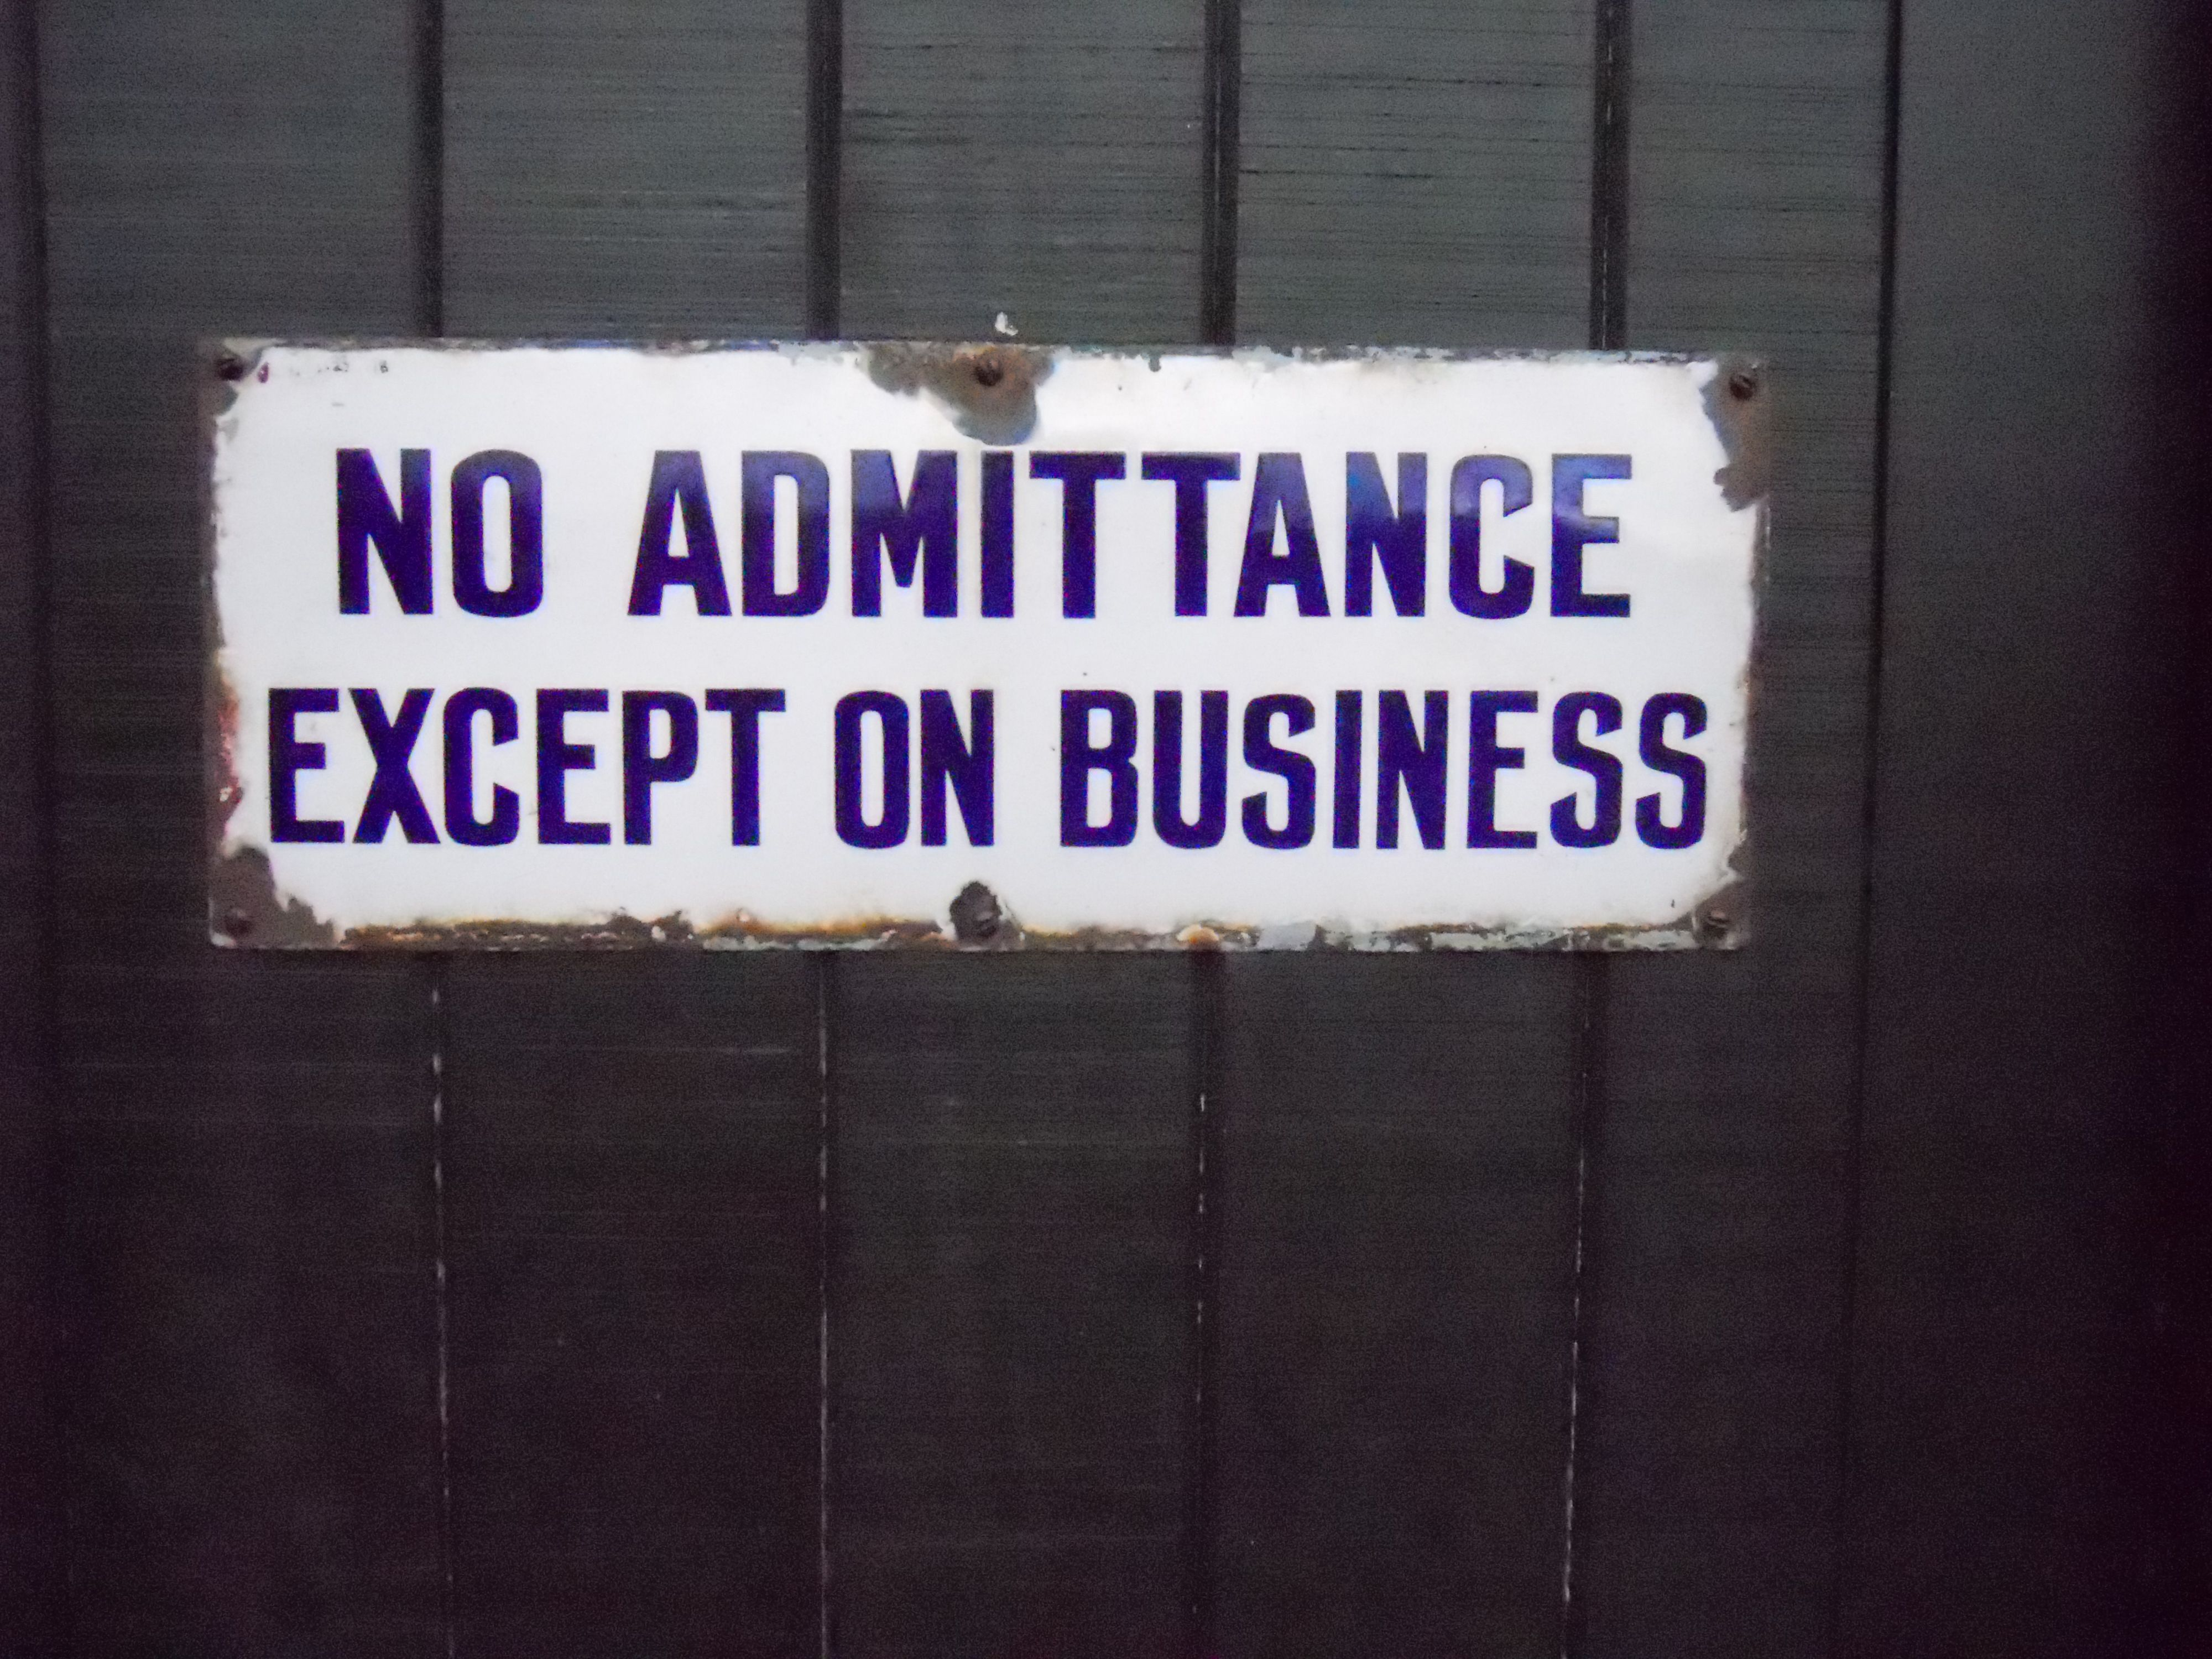 No Admittance Except on Business